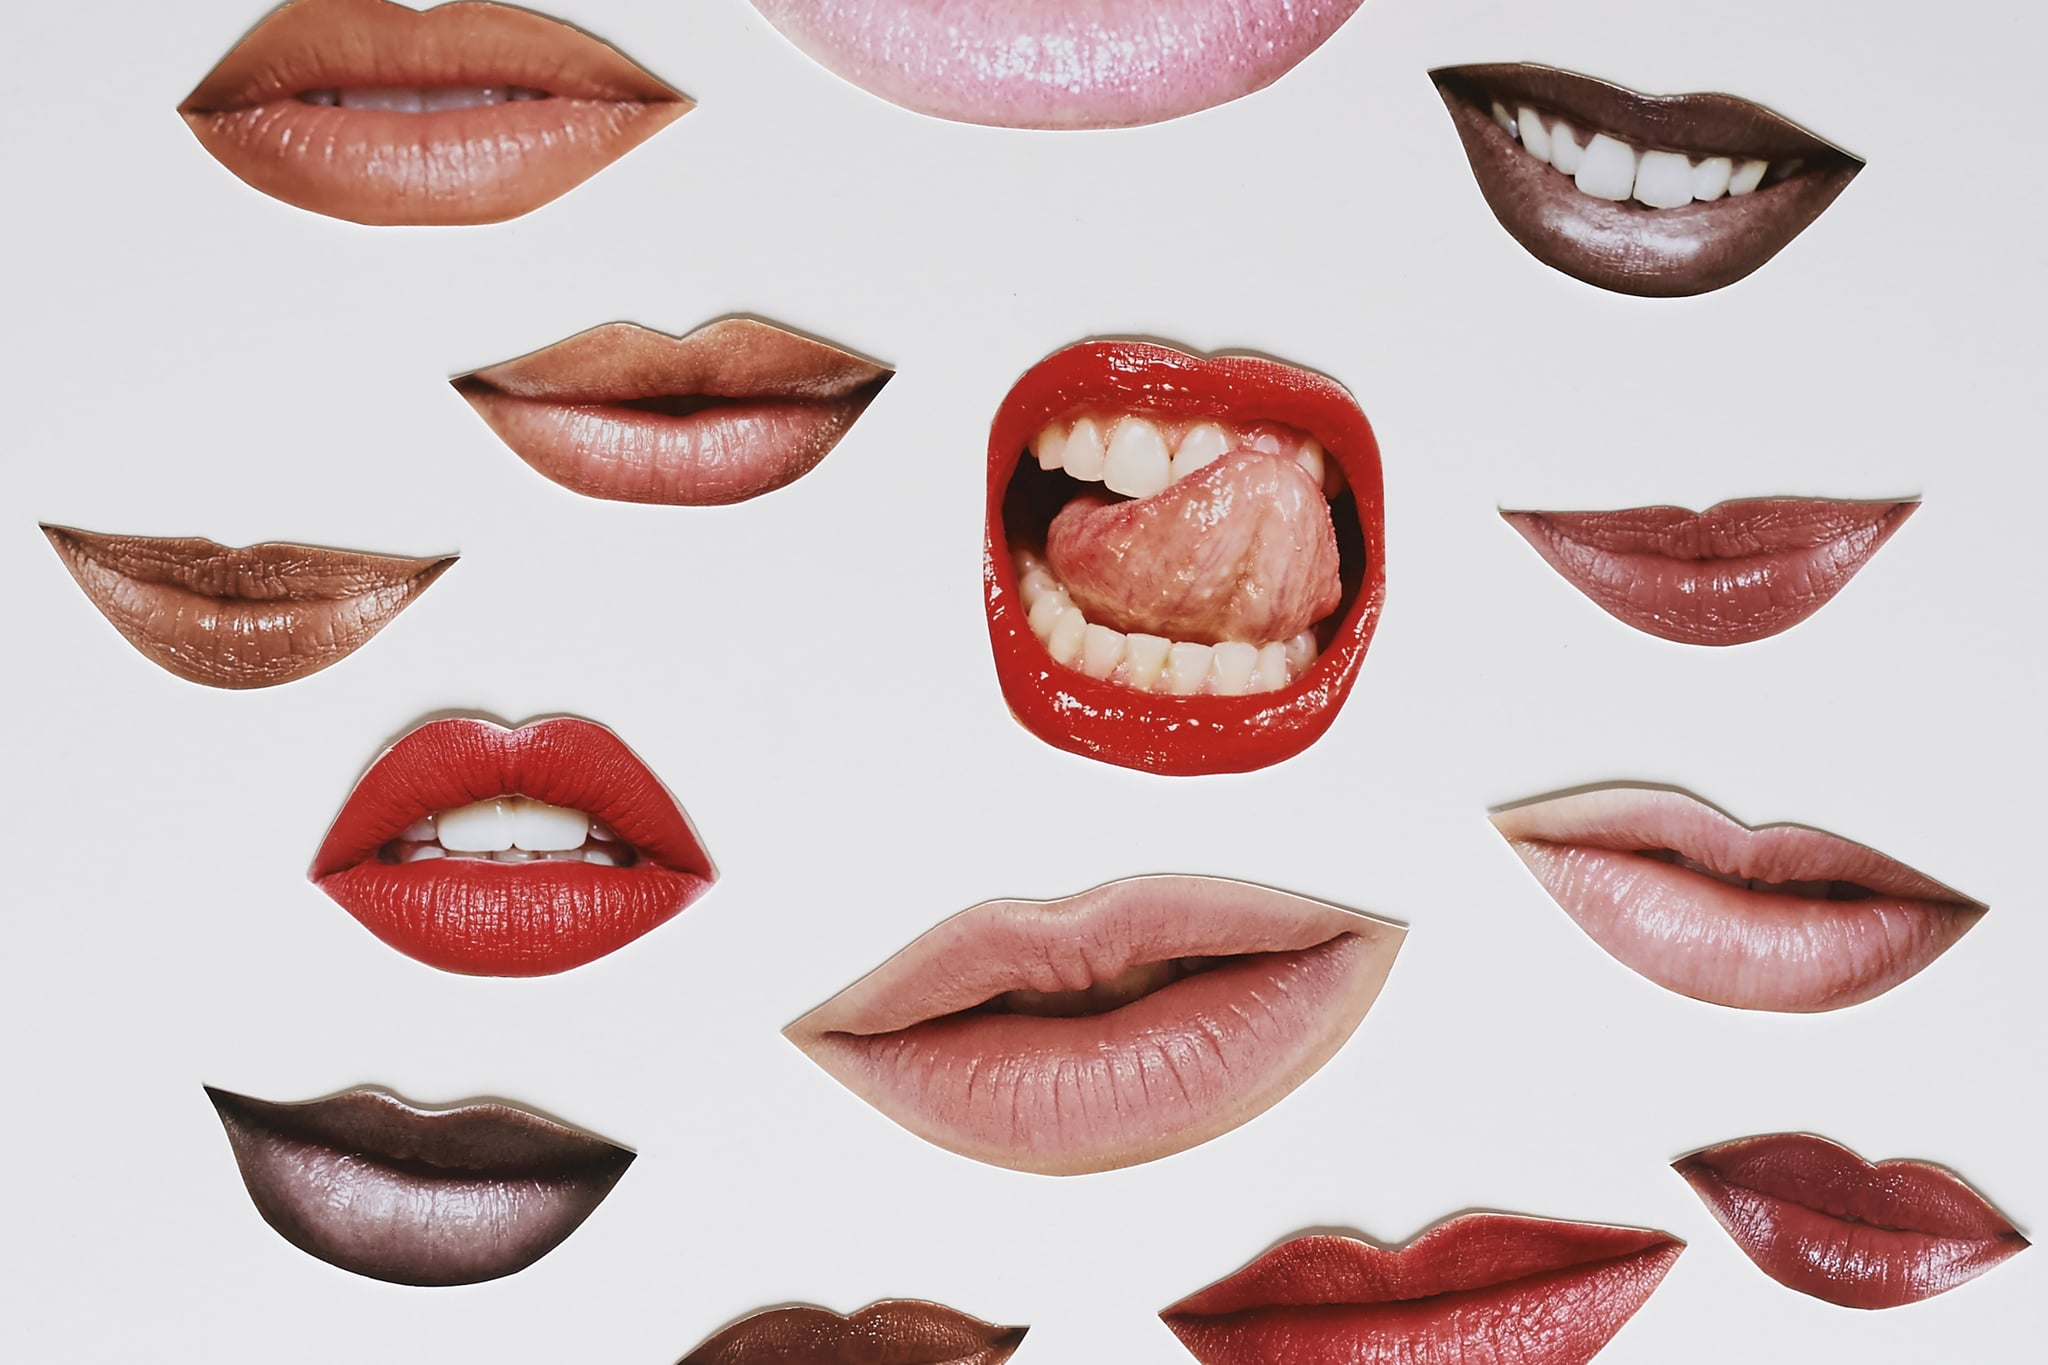 montage of faces lips eys mouths